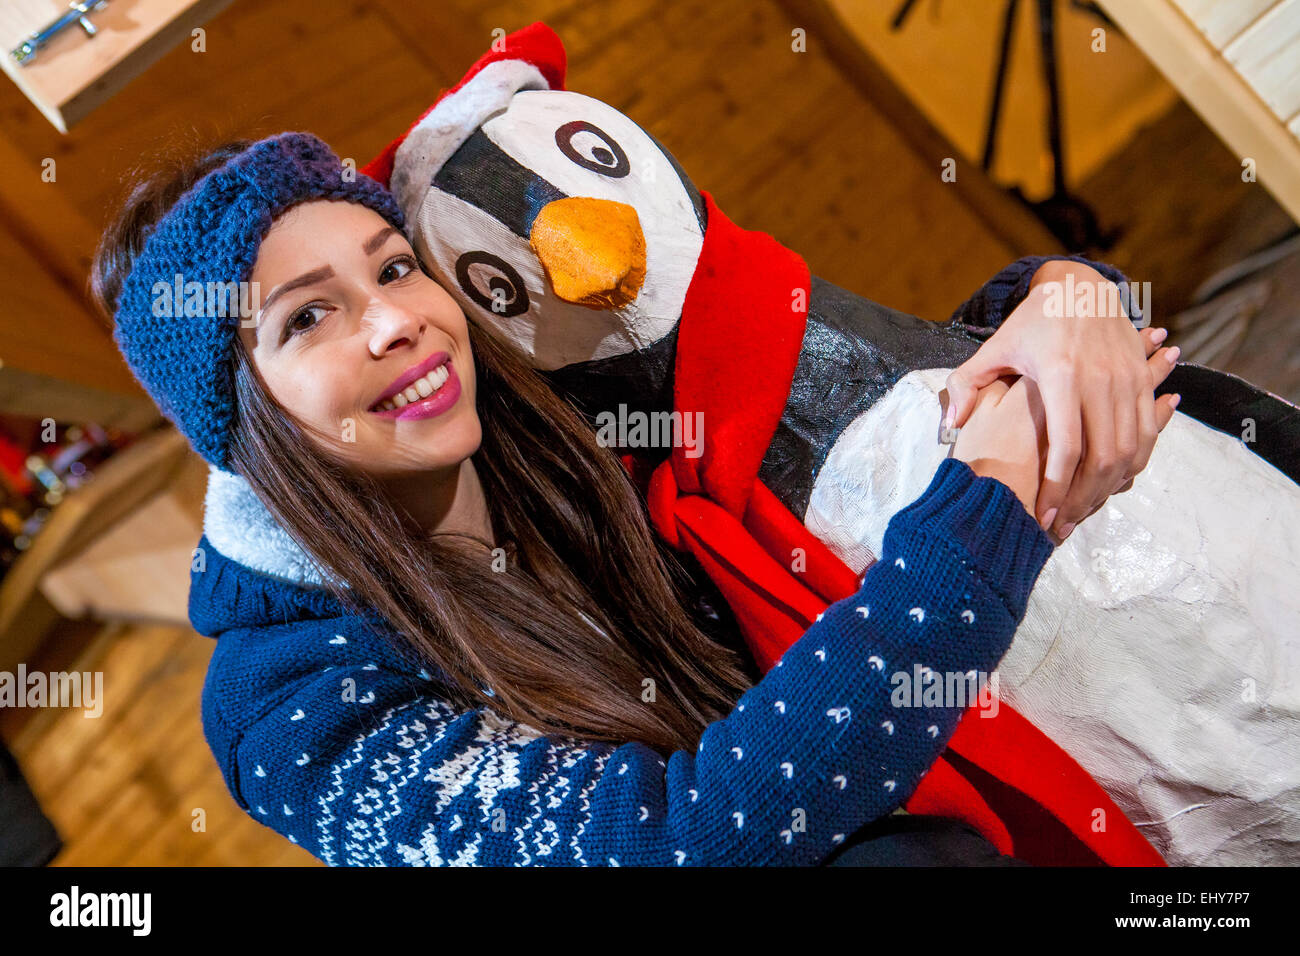 Young woman posing with penguin figurine Stock Photo